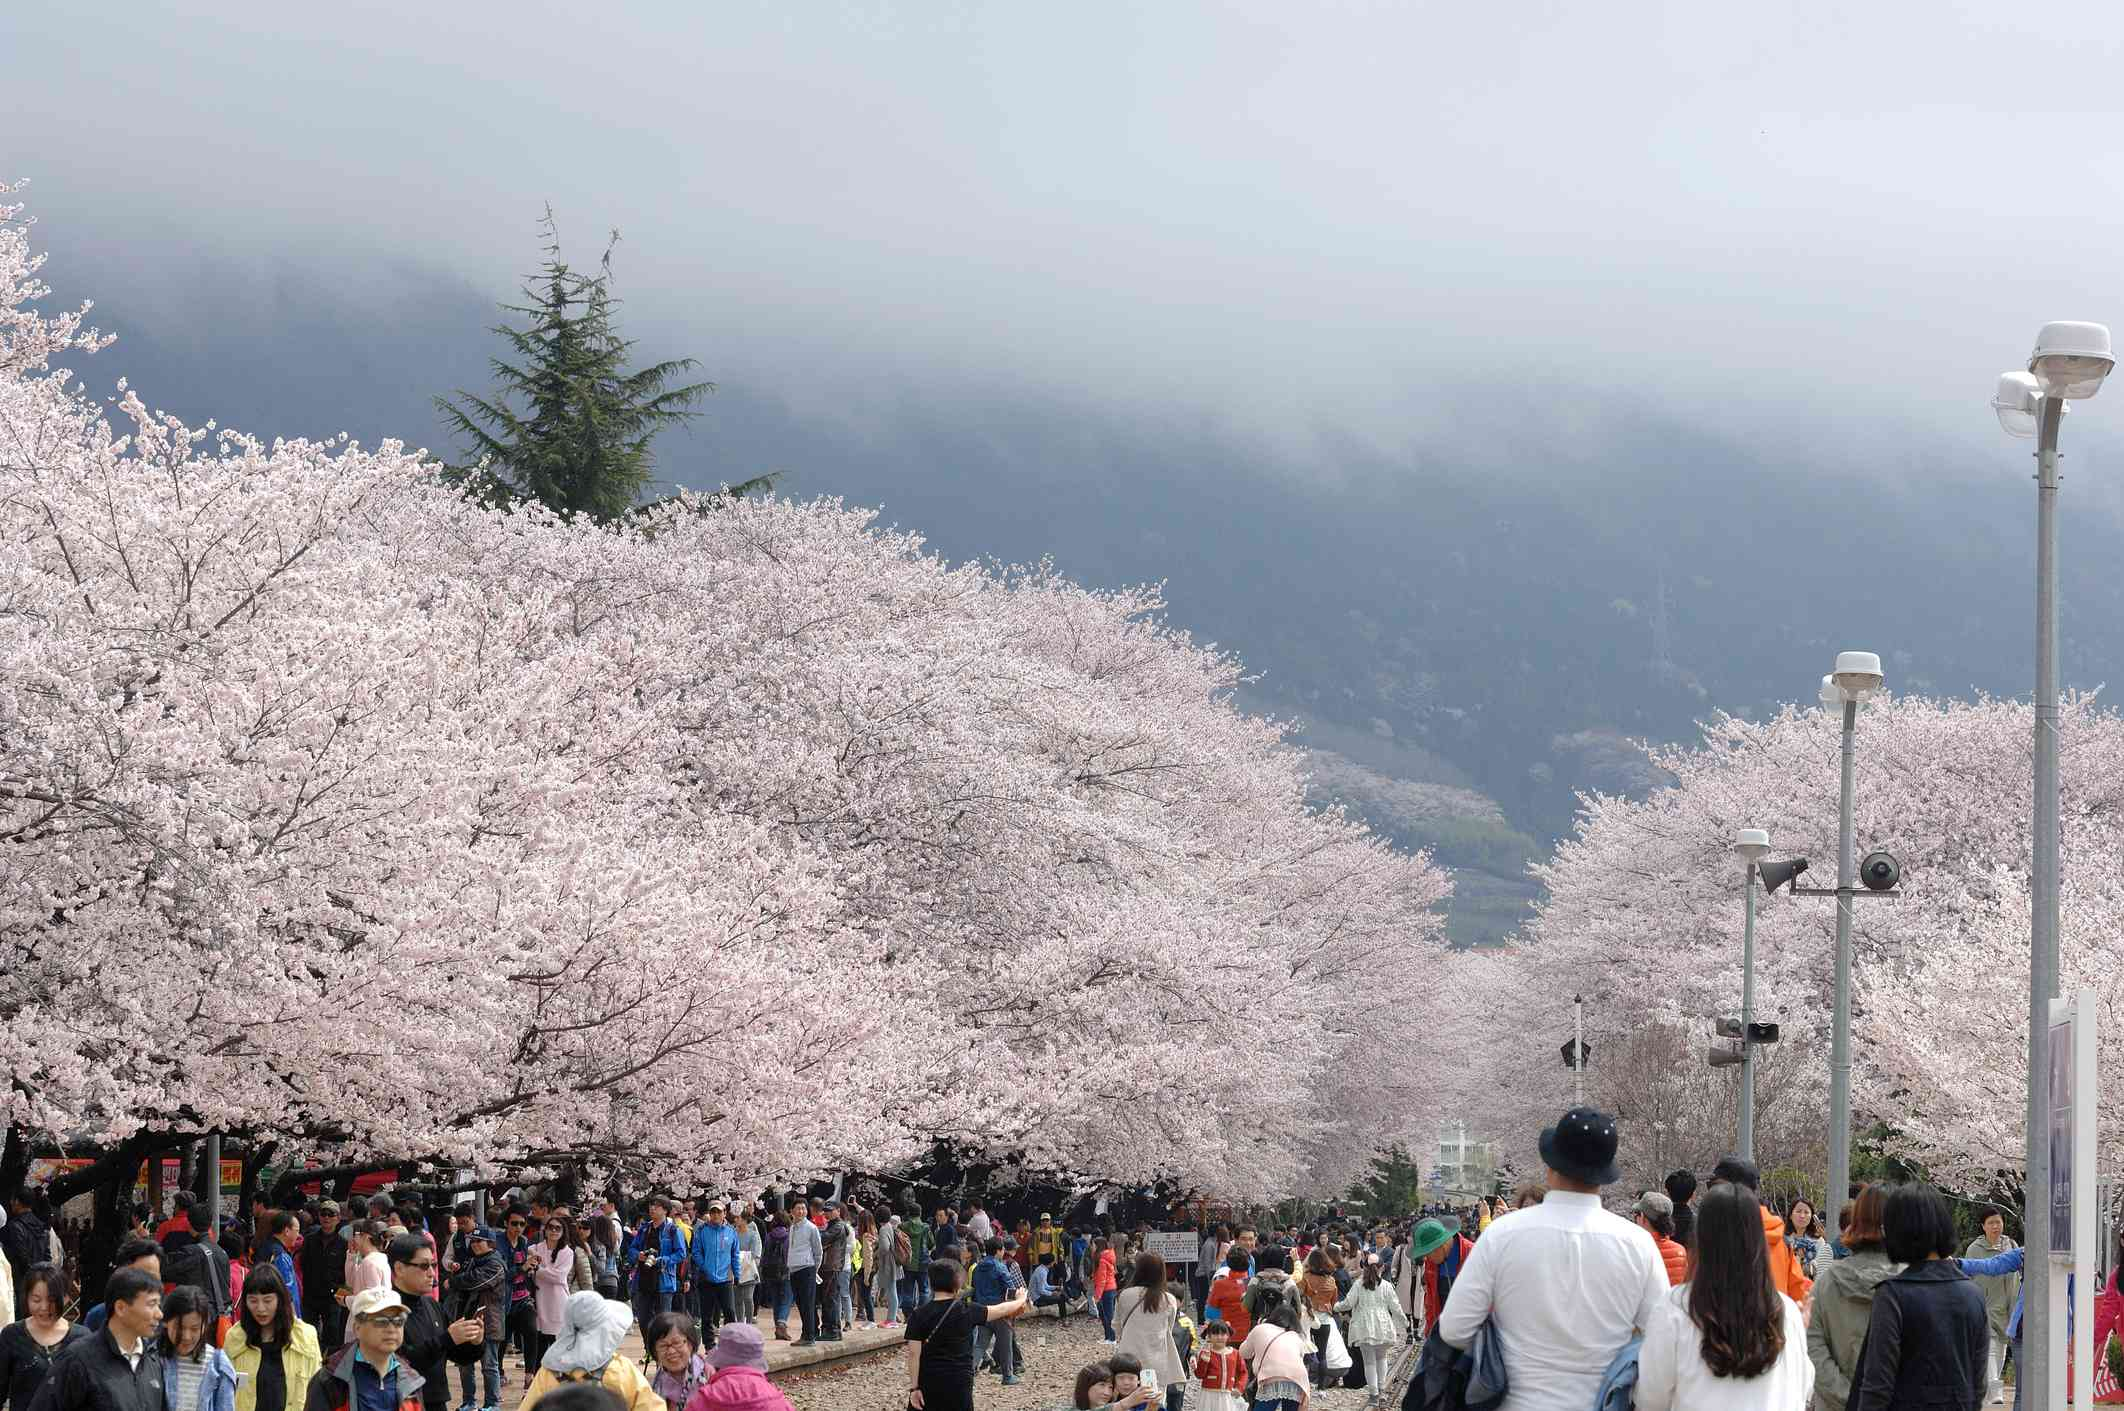 Cherry blossoms in Jinhae-si, South Korea